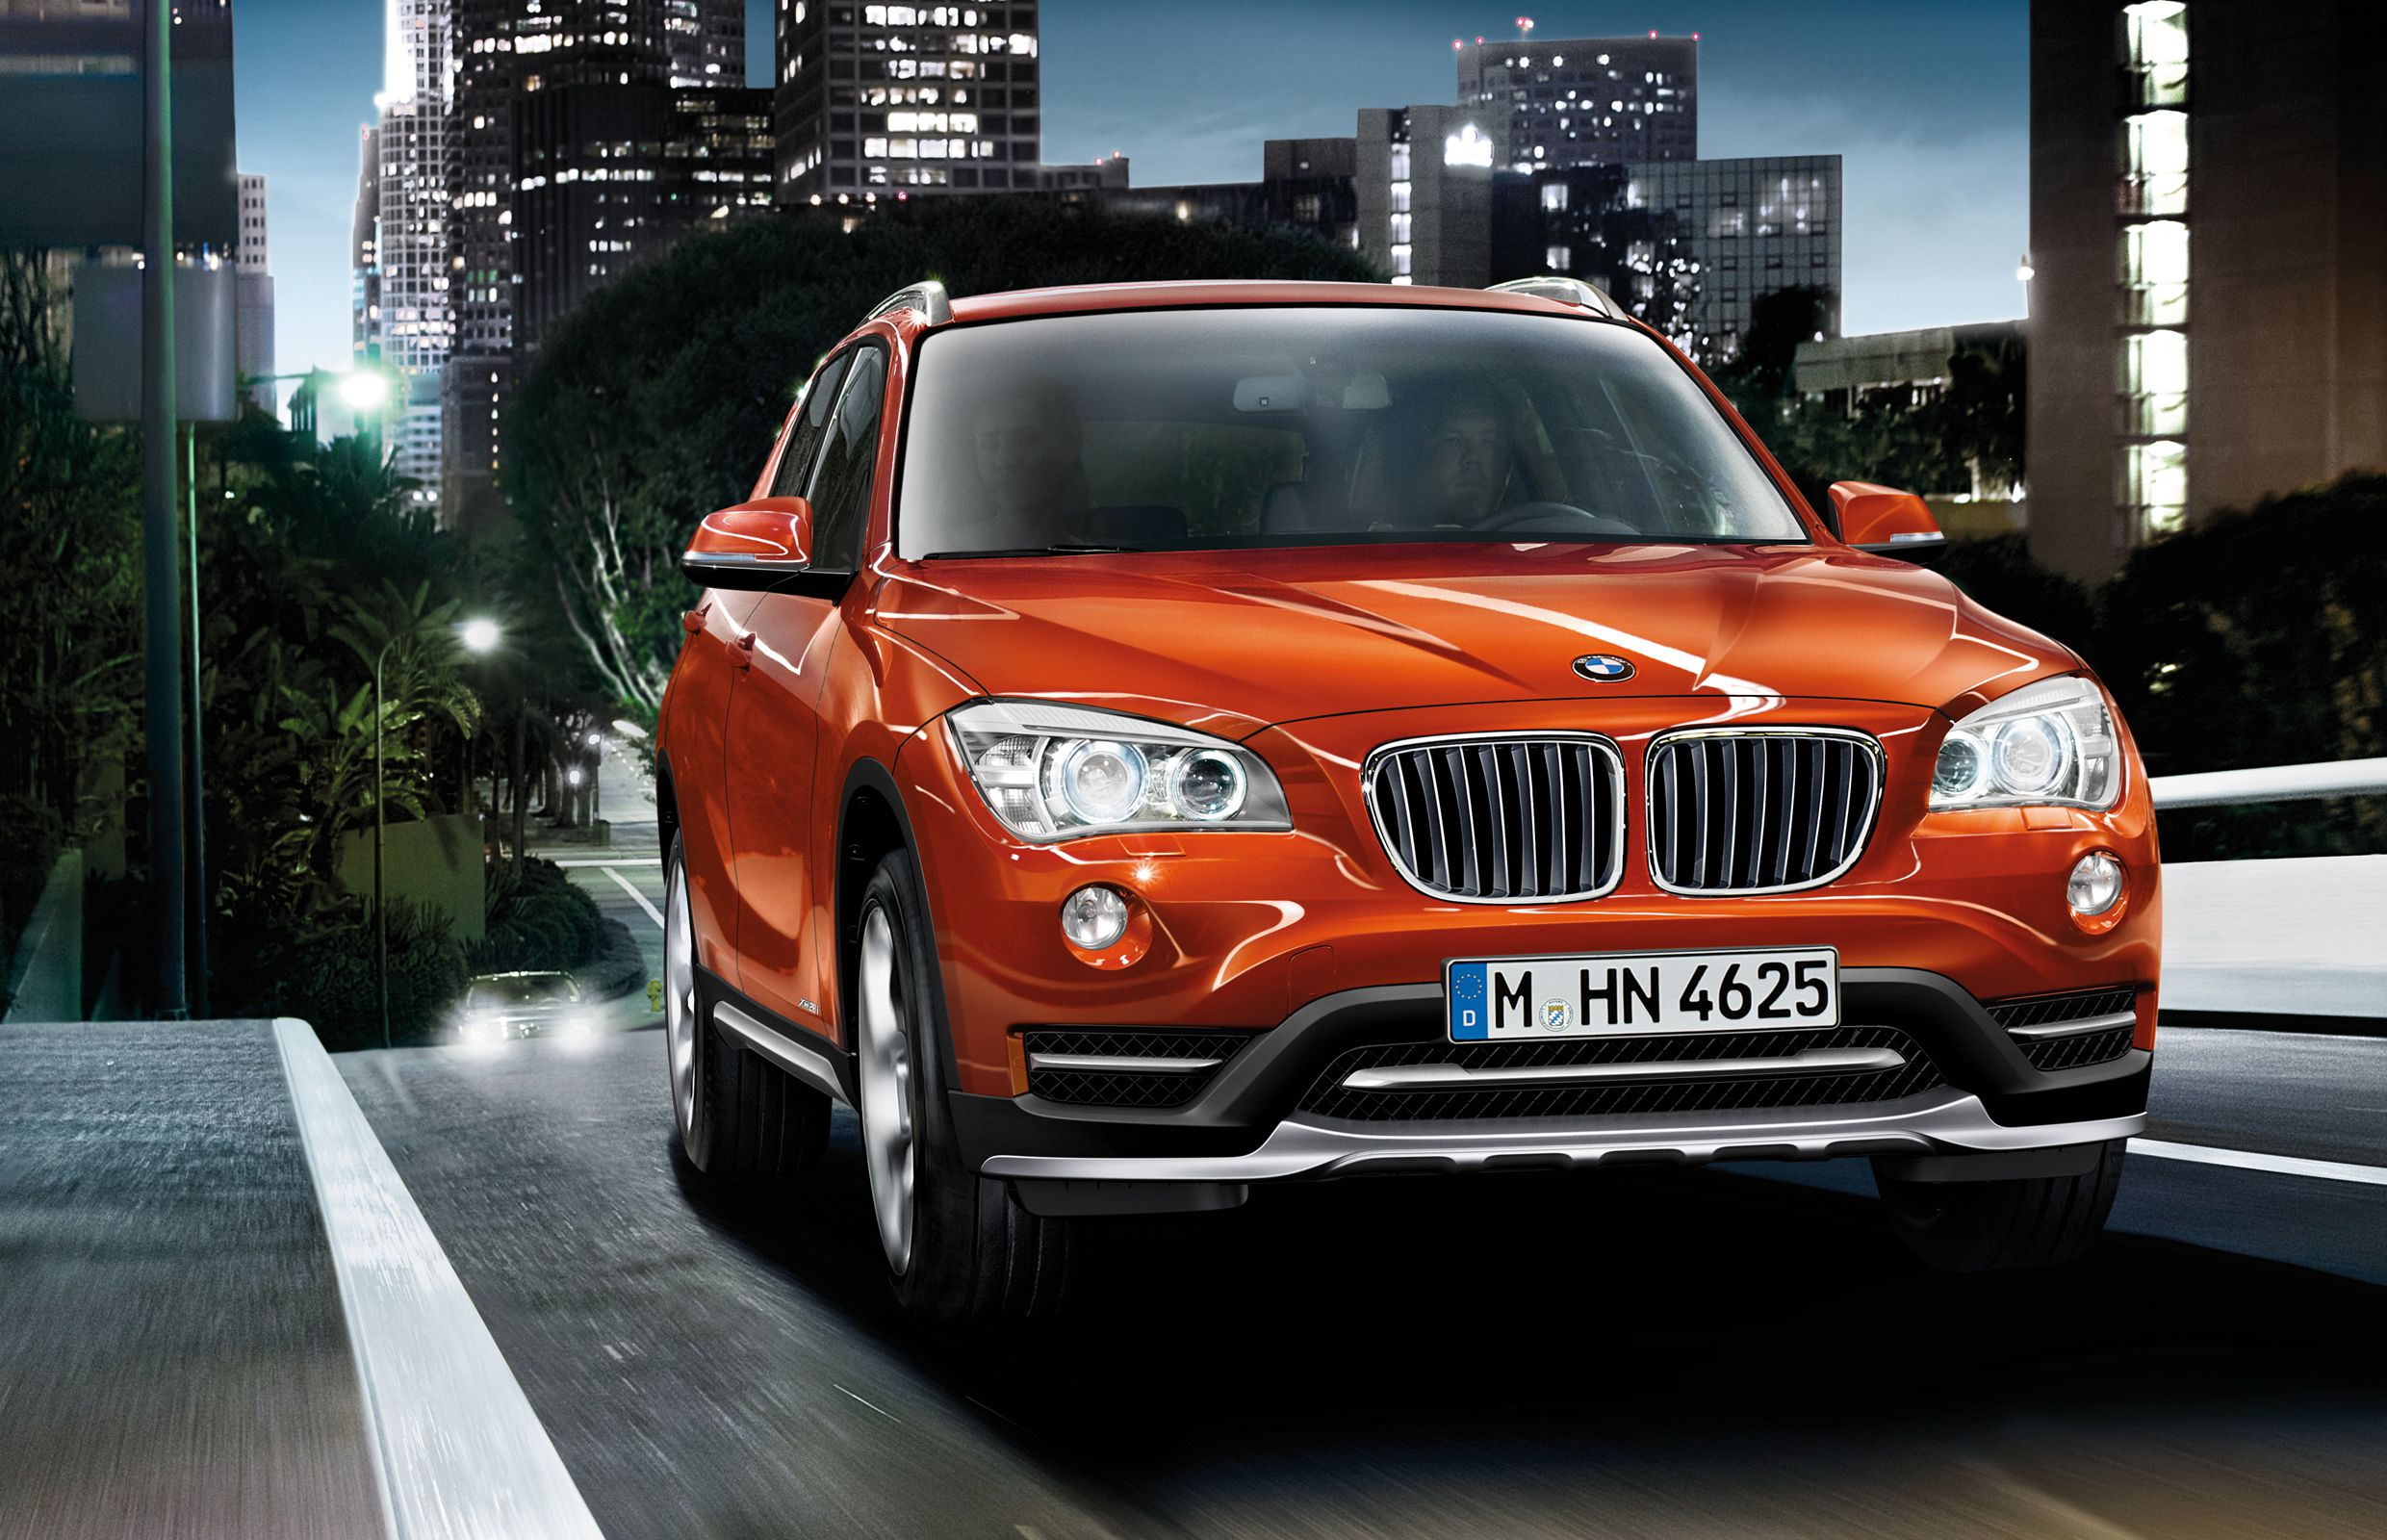 The 2014 BMW X1 will make its world premiere at the Detroit auto show in January.